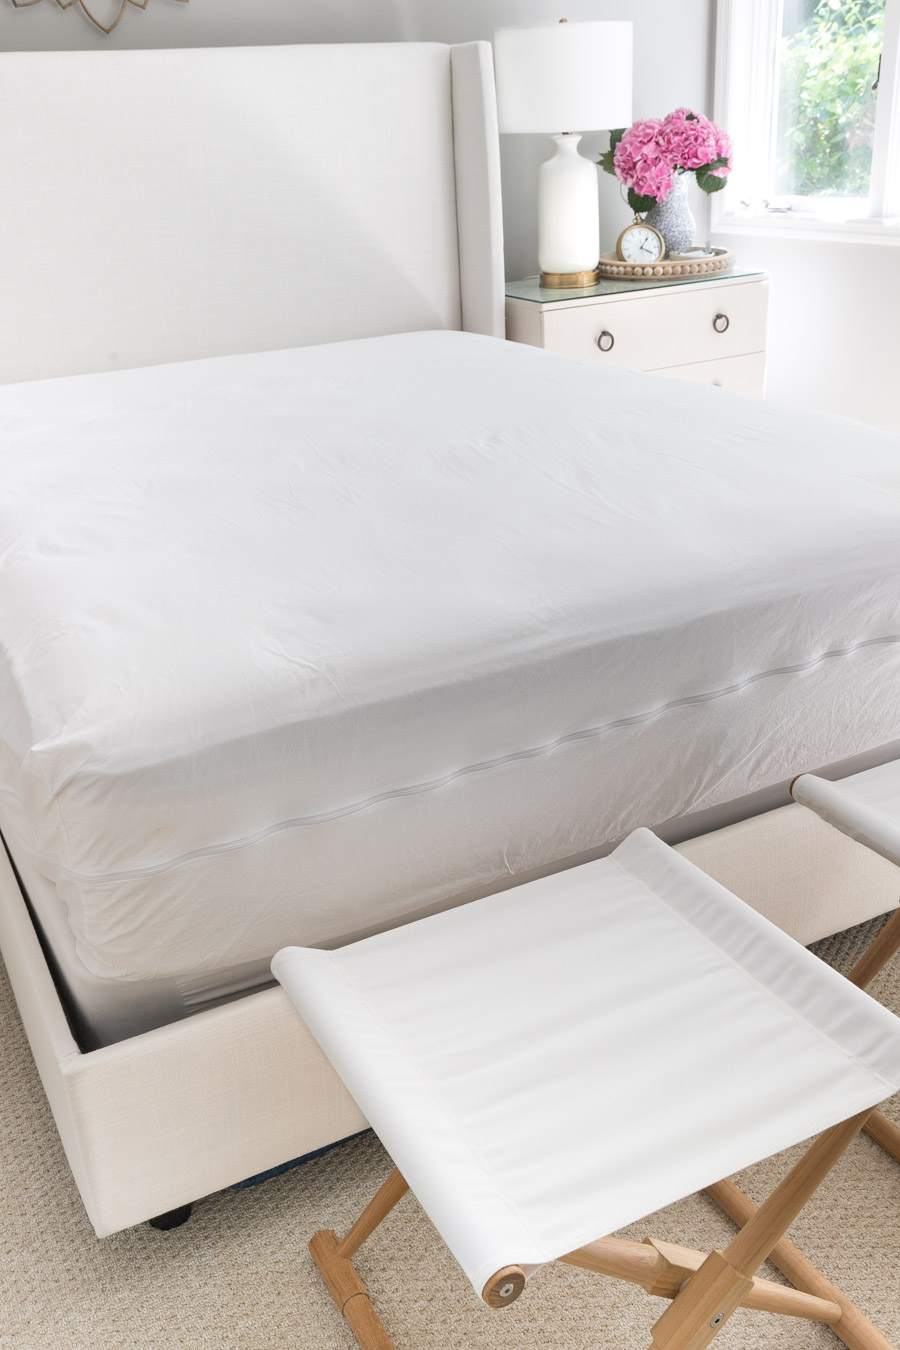 Great recommendation for protecting your mattress from dust mites!